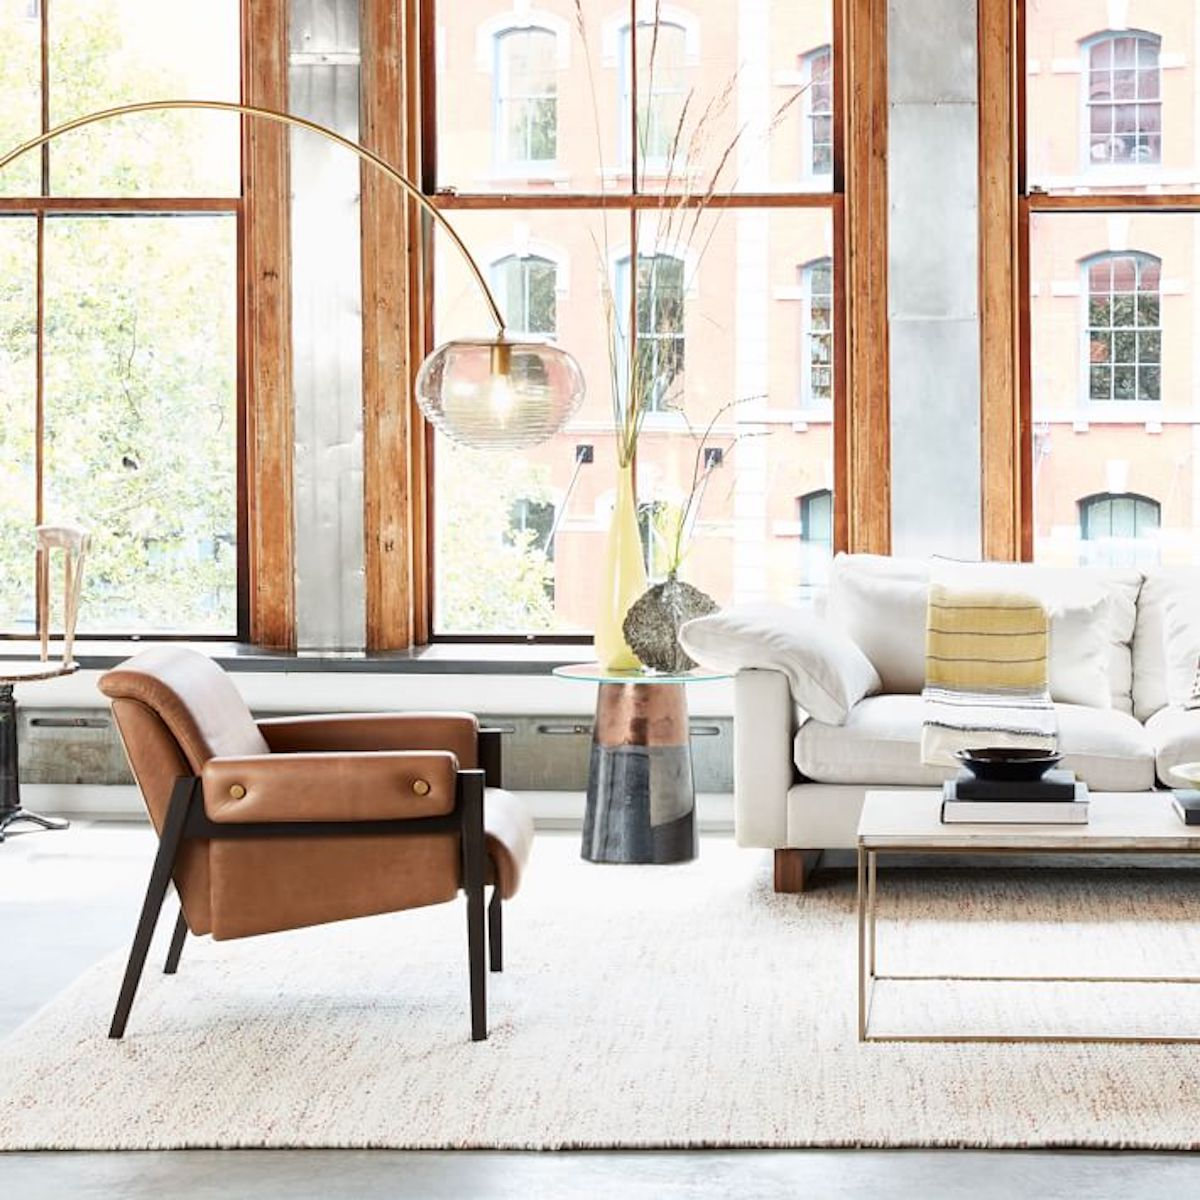 Super 10 Cozy Chairs That Arent Your Dads Recliner Camille Styles Alphanode Cool Chair Designs And Ideas Alphanodeonline